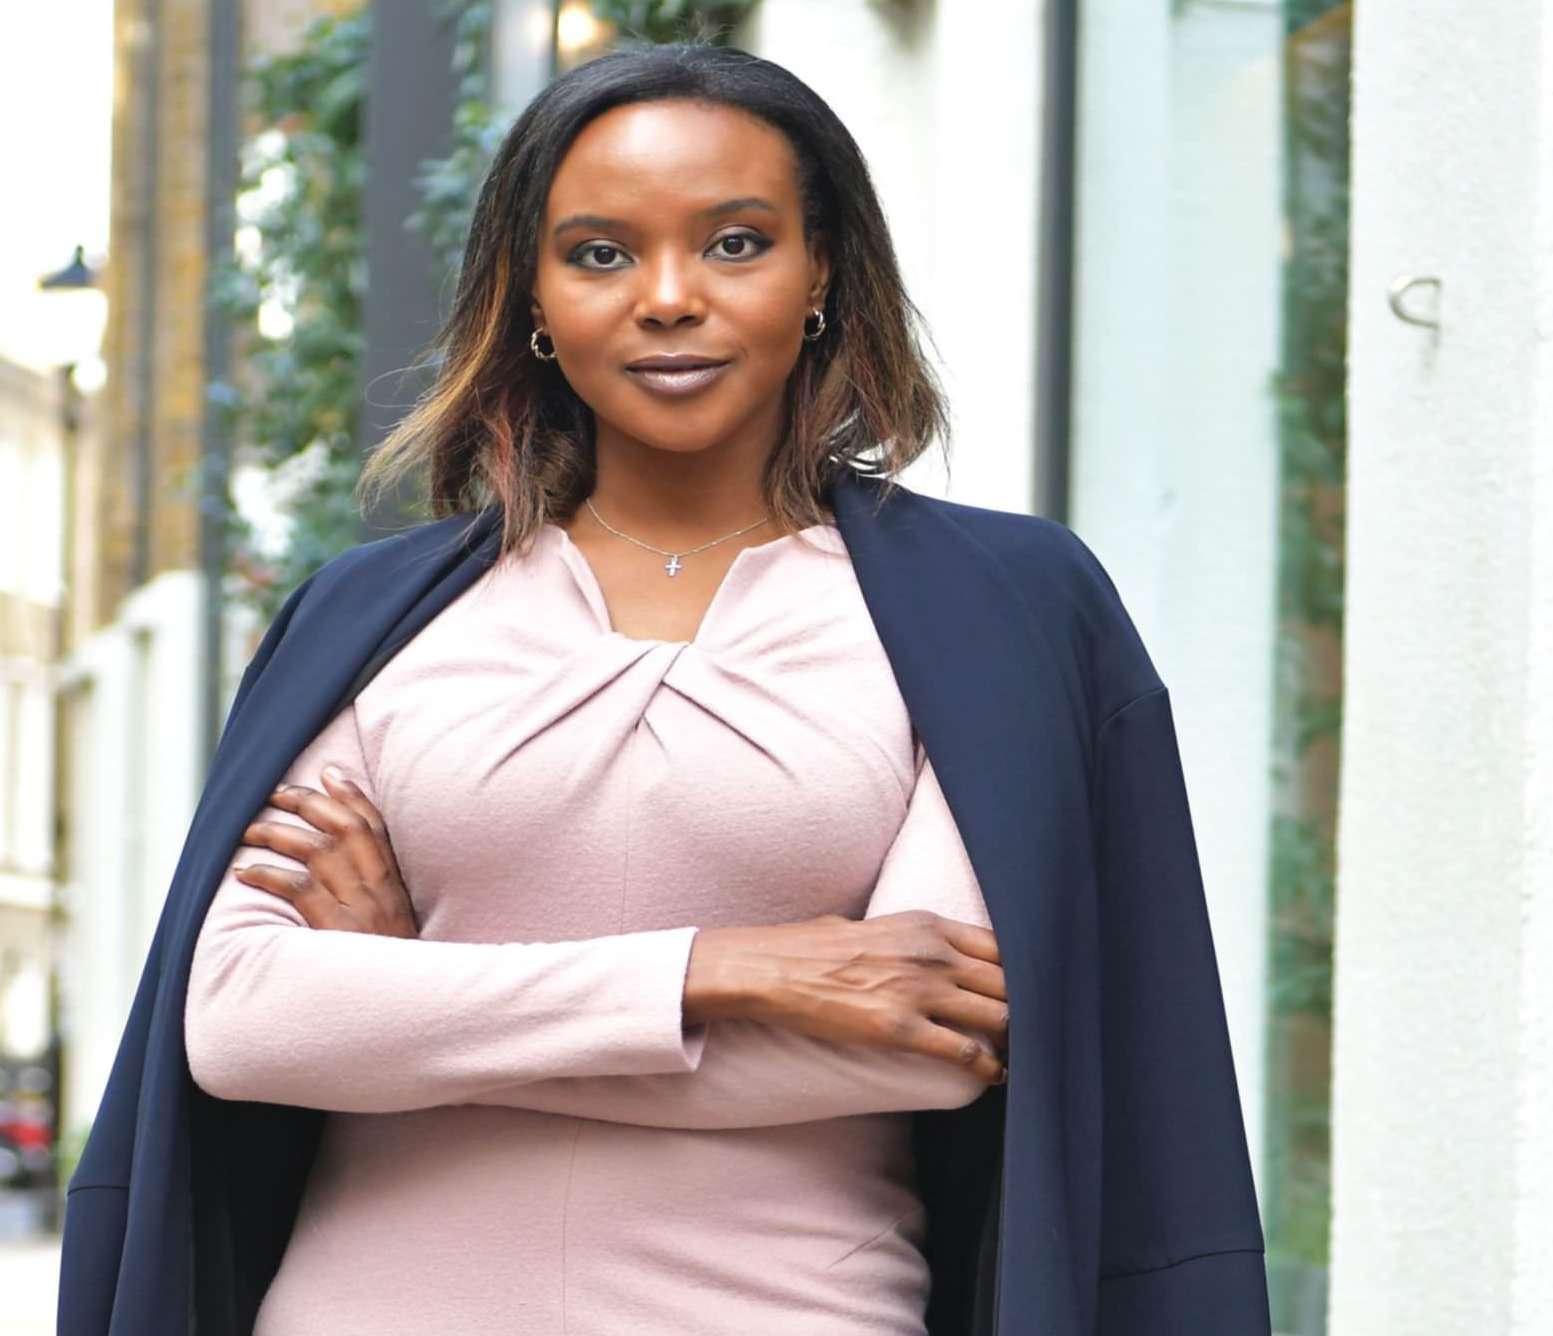 Funke Abimbola: Tenacious and Determined Woman At The Top